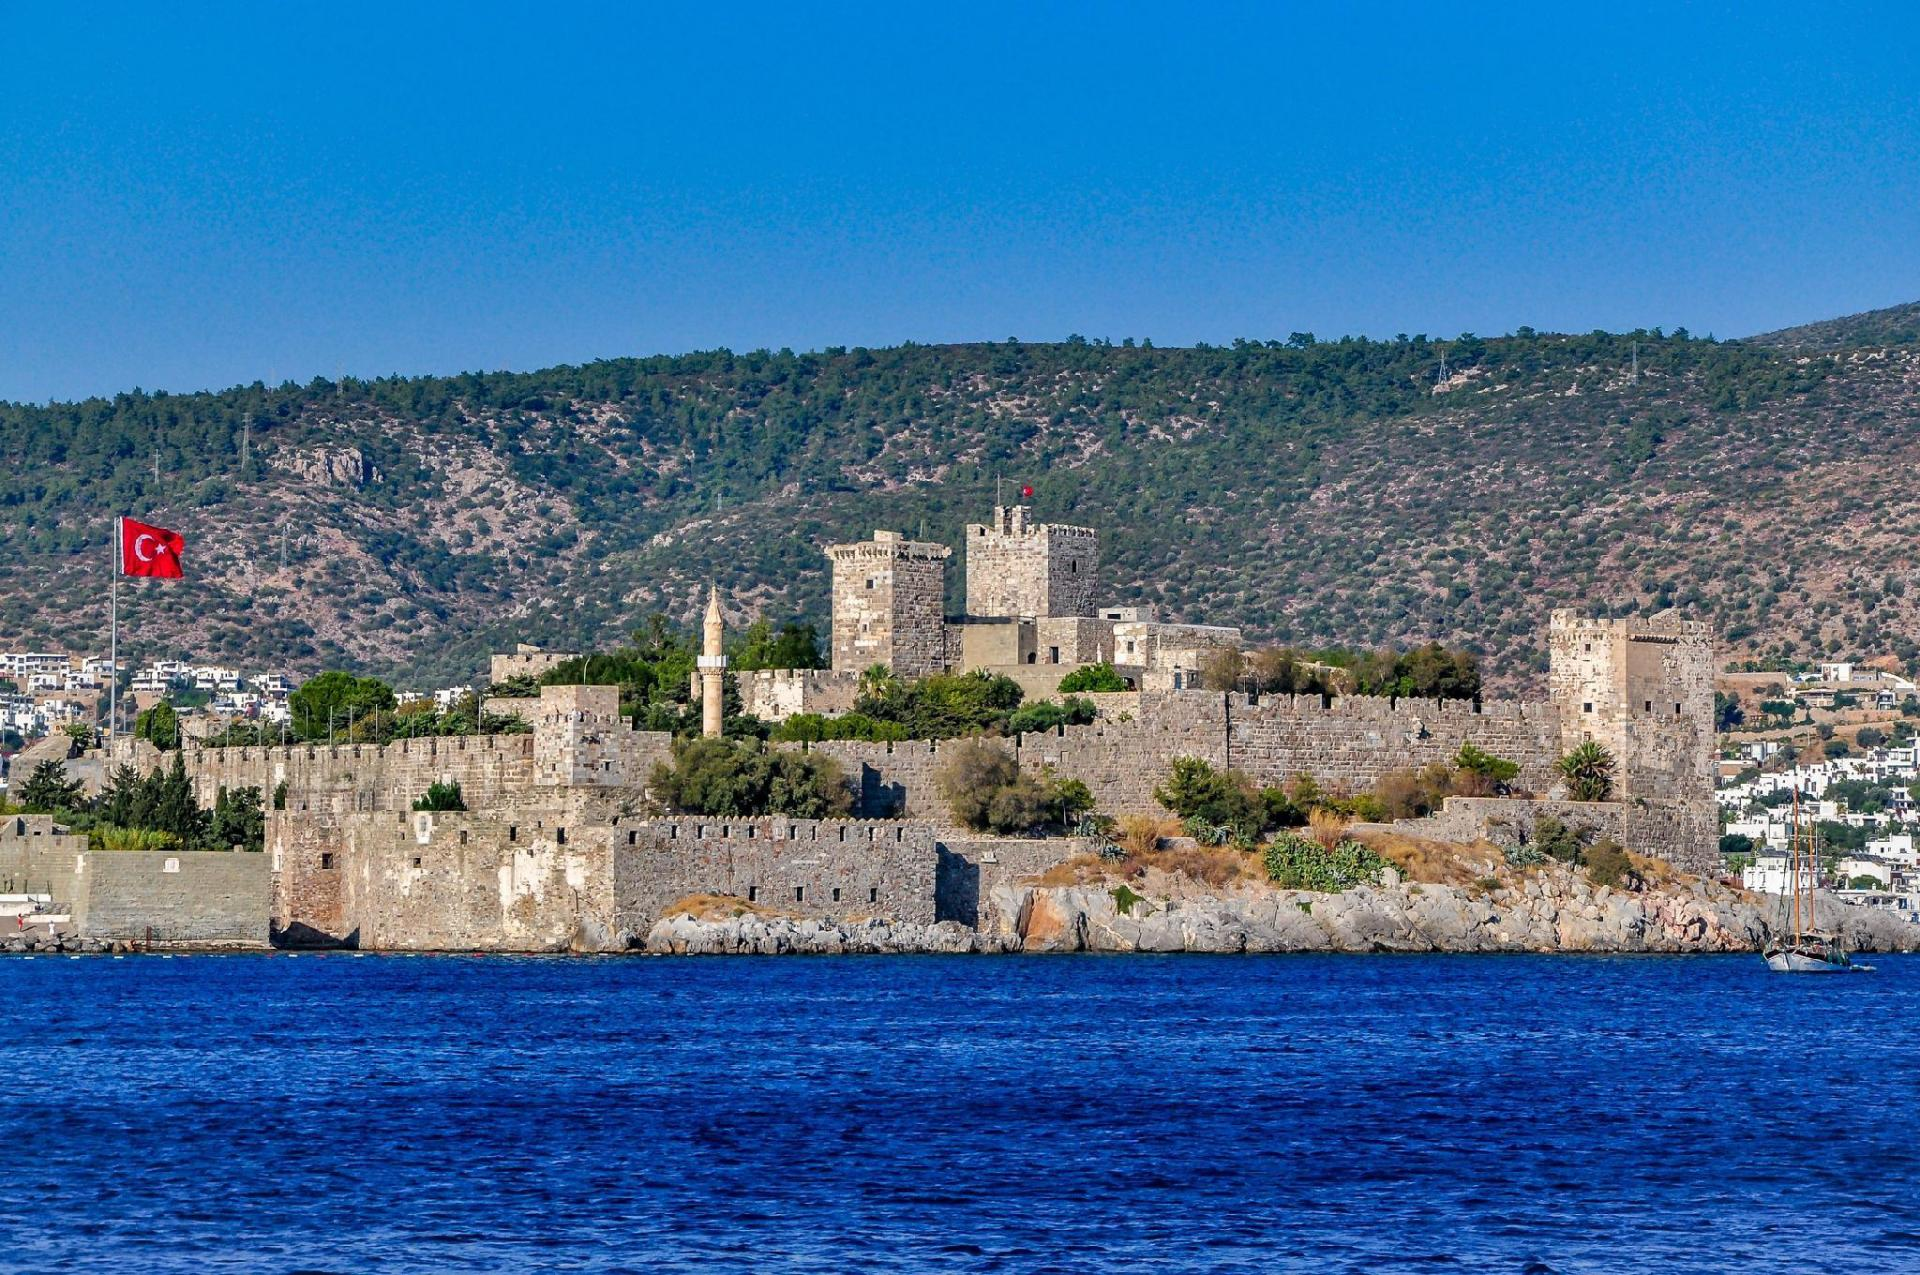 Turkey Hotels - Online hotel reservations for Hotels in Turkey